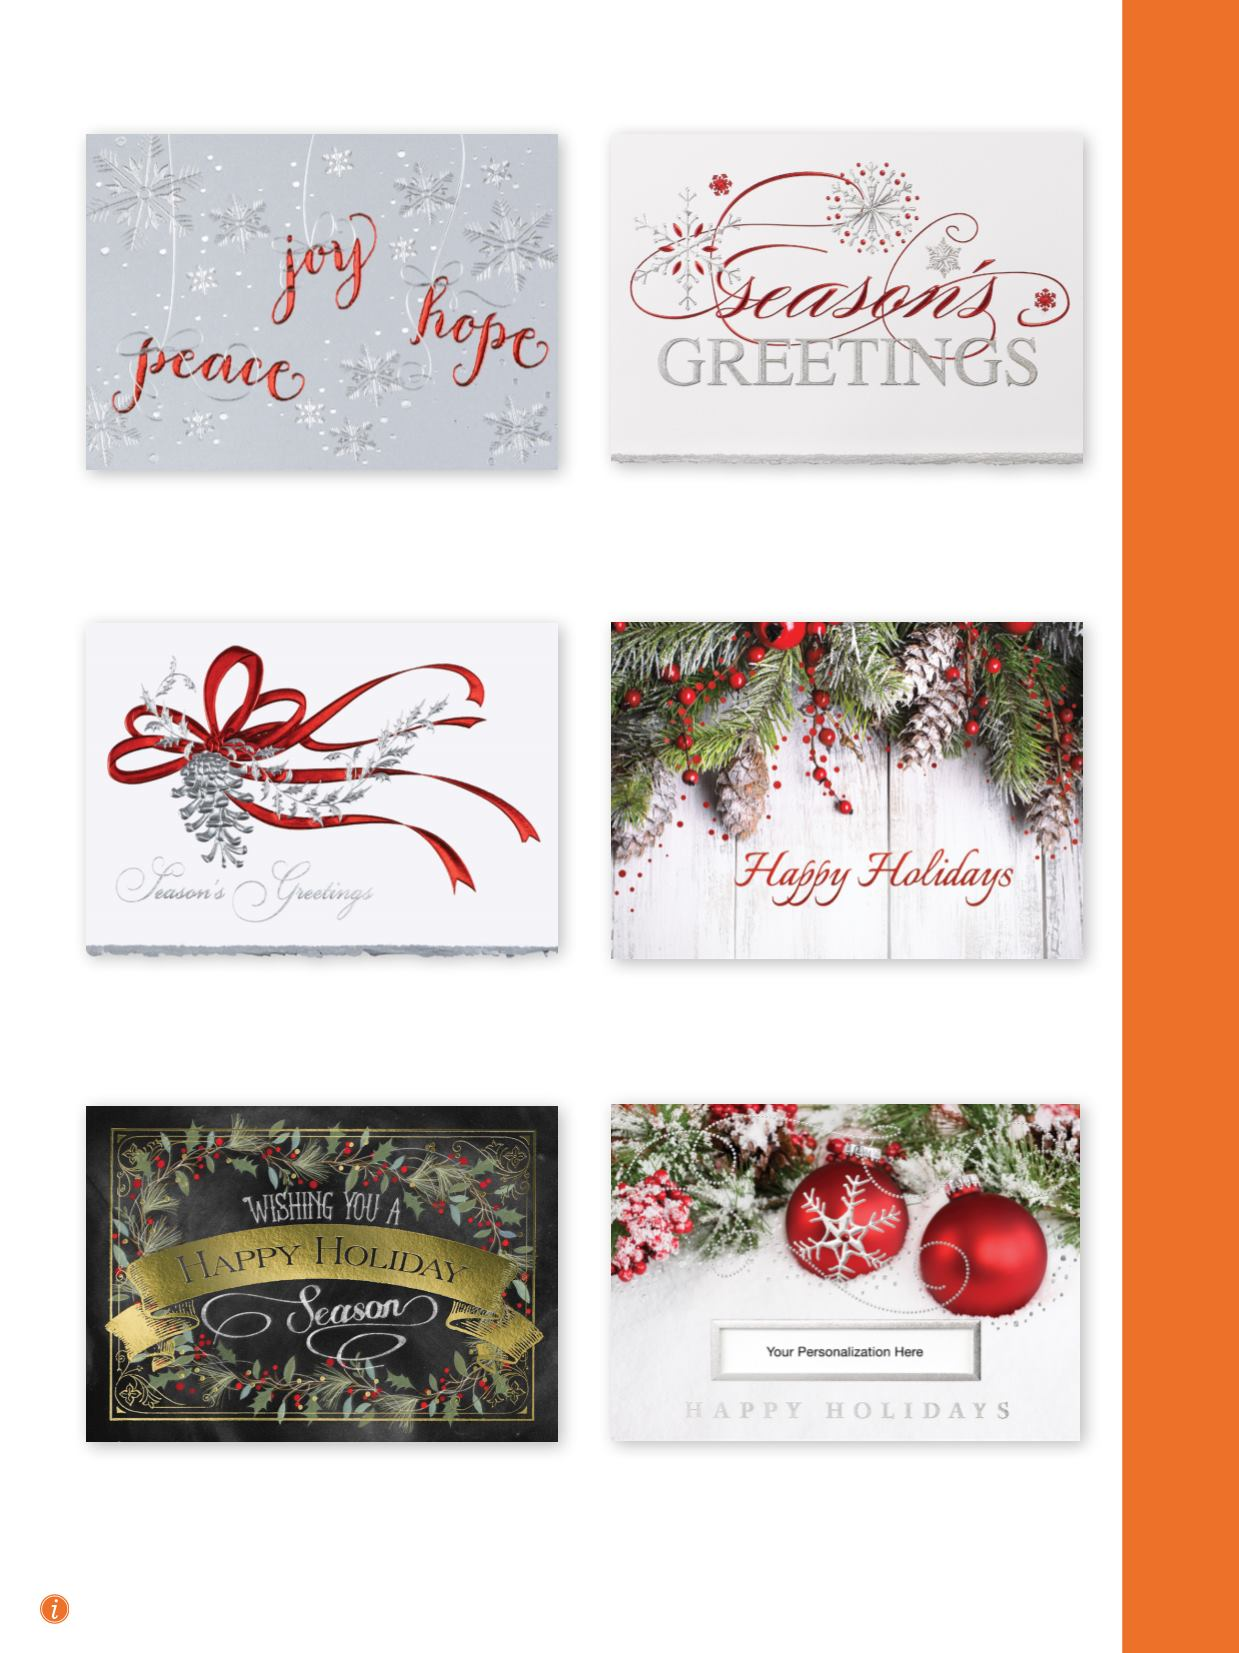 Navitor Holiday And Business Greetings